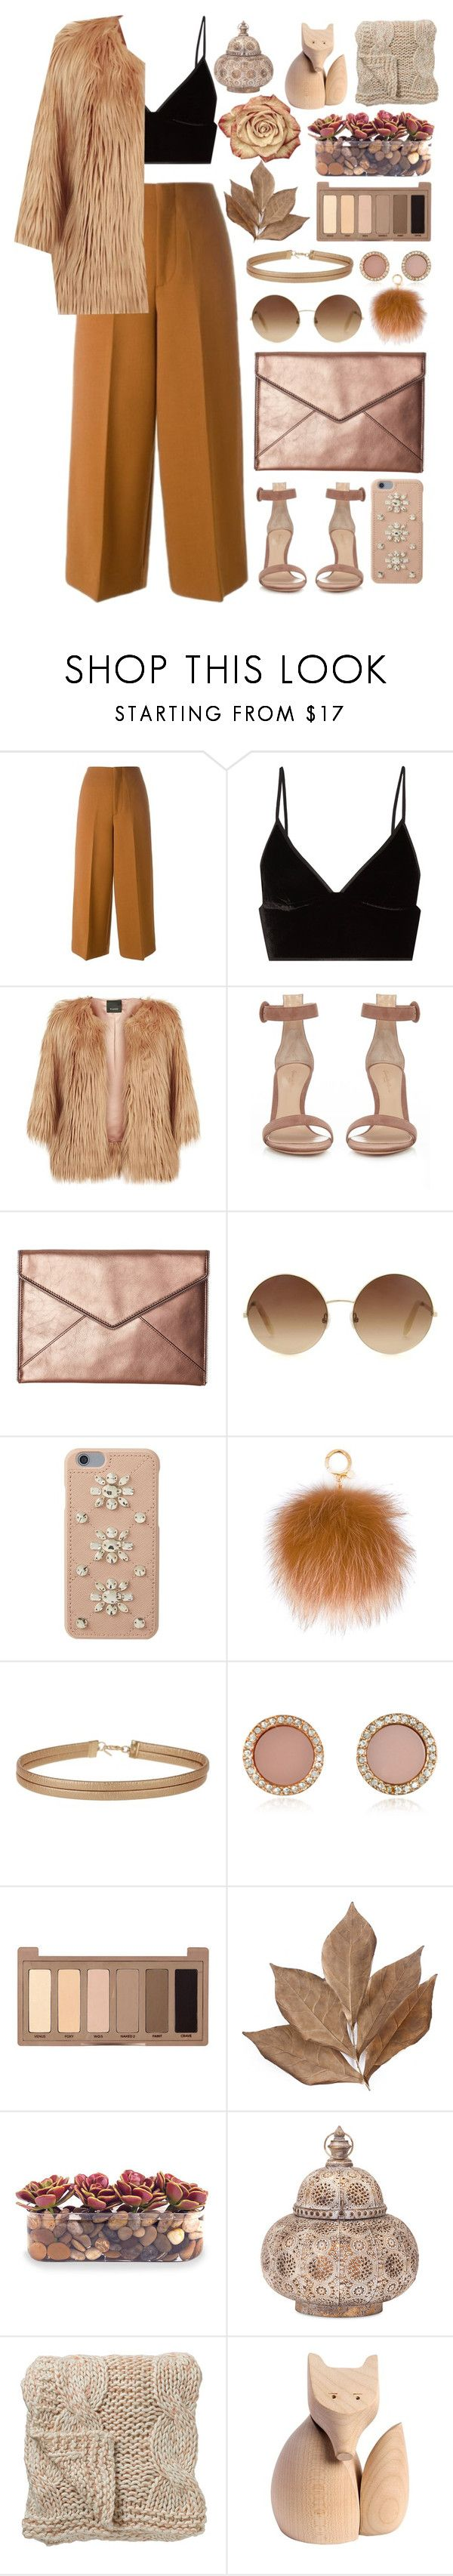 """""""Can't Hold Me Down ♥"""" by shyanimallover5 ❤ liked on Polyvore featuring Marni, T By Alexander Wang, Pinko, Gianvito Rossi, Rebecca Minkoff, Victoria Beckham, MICHAEL Michael Kors, Miss Selfridge, Michael Kors and Urban Decay"""